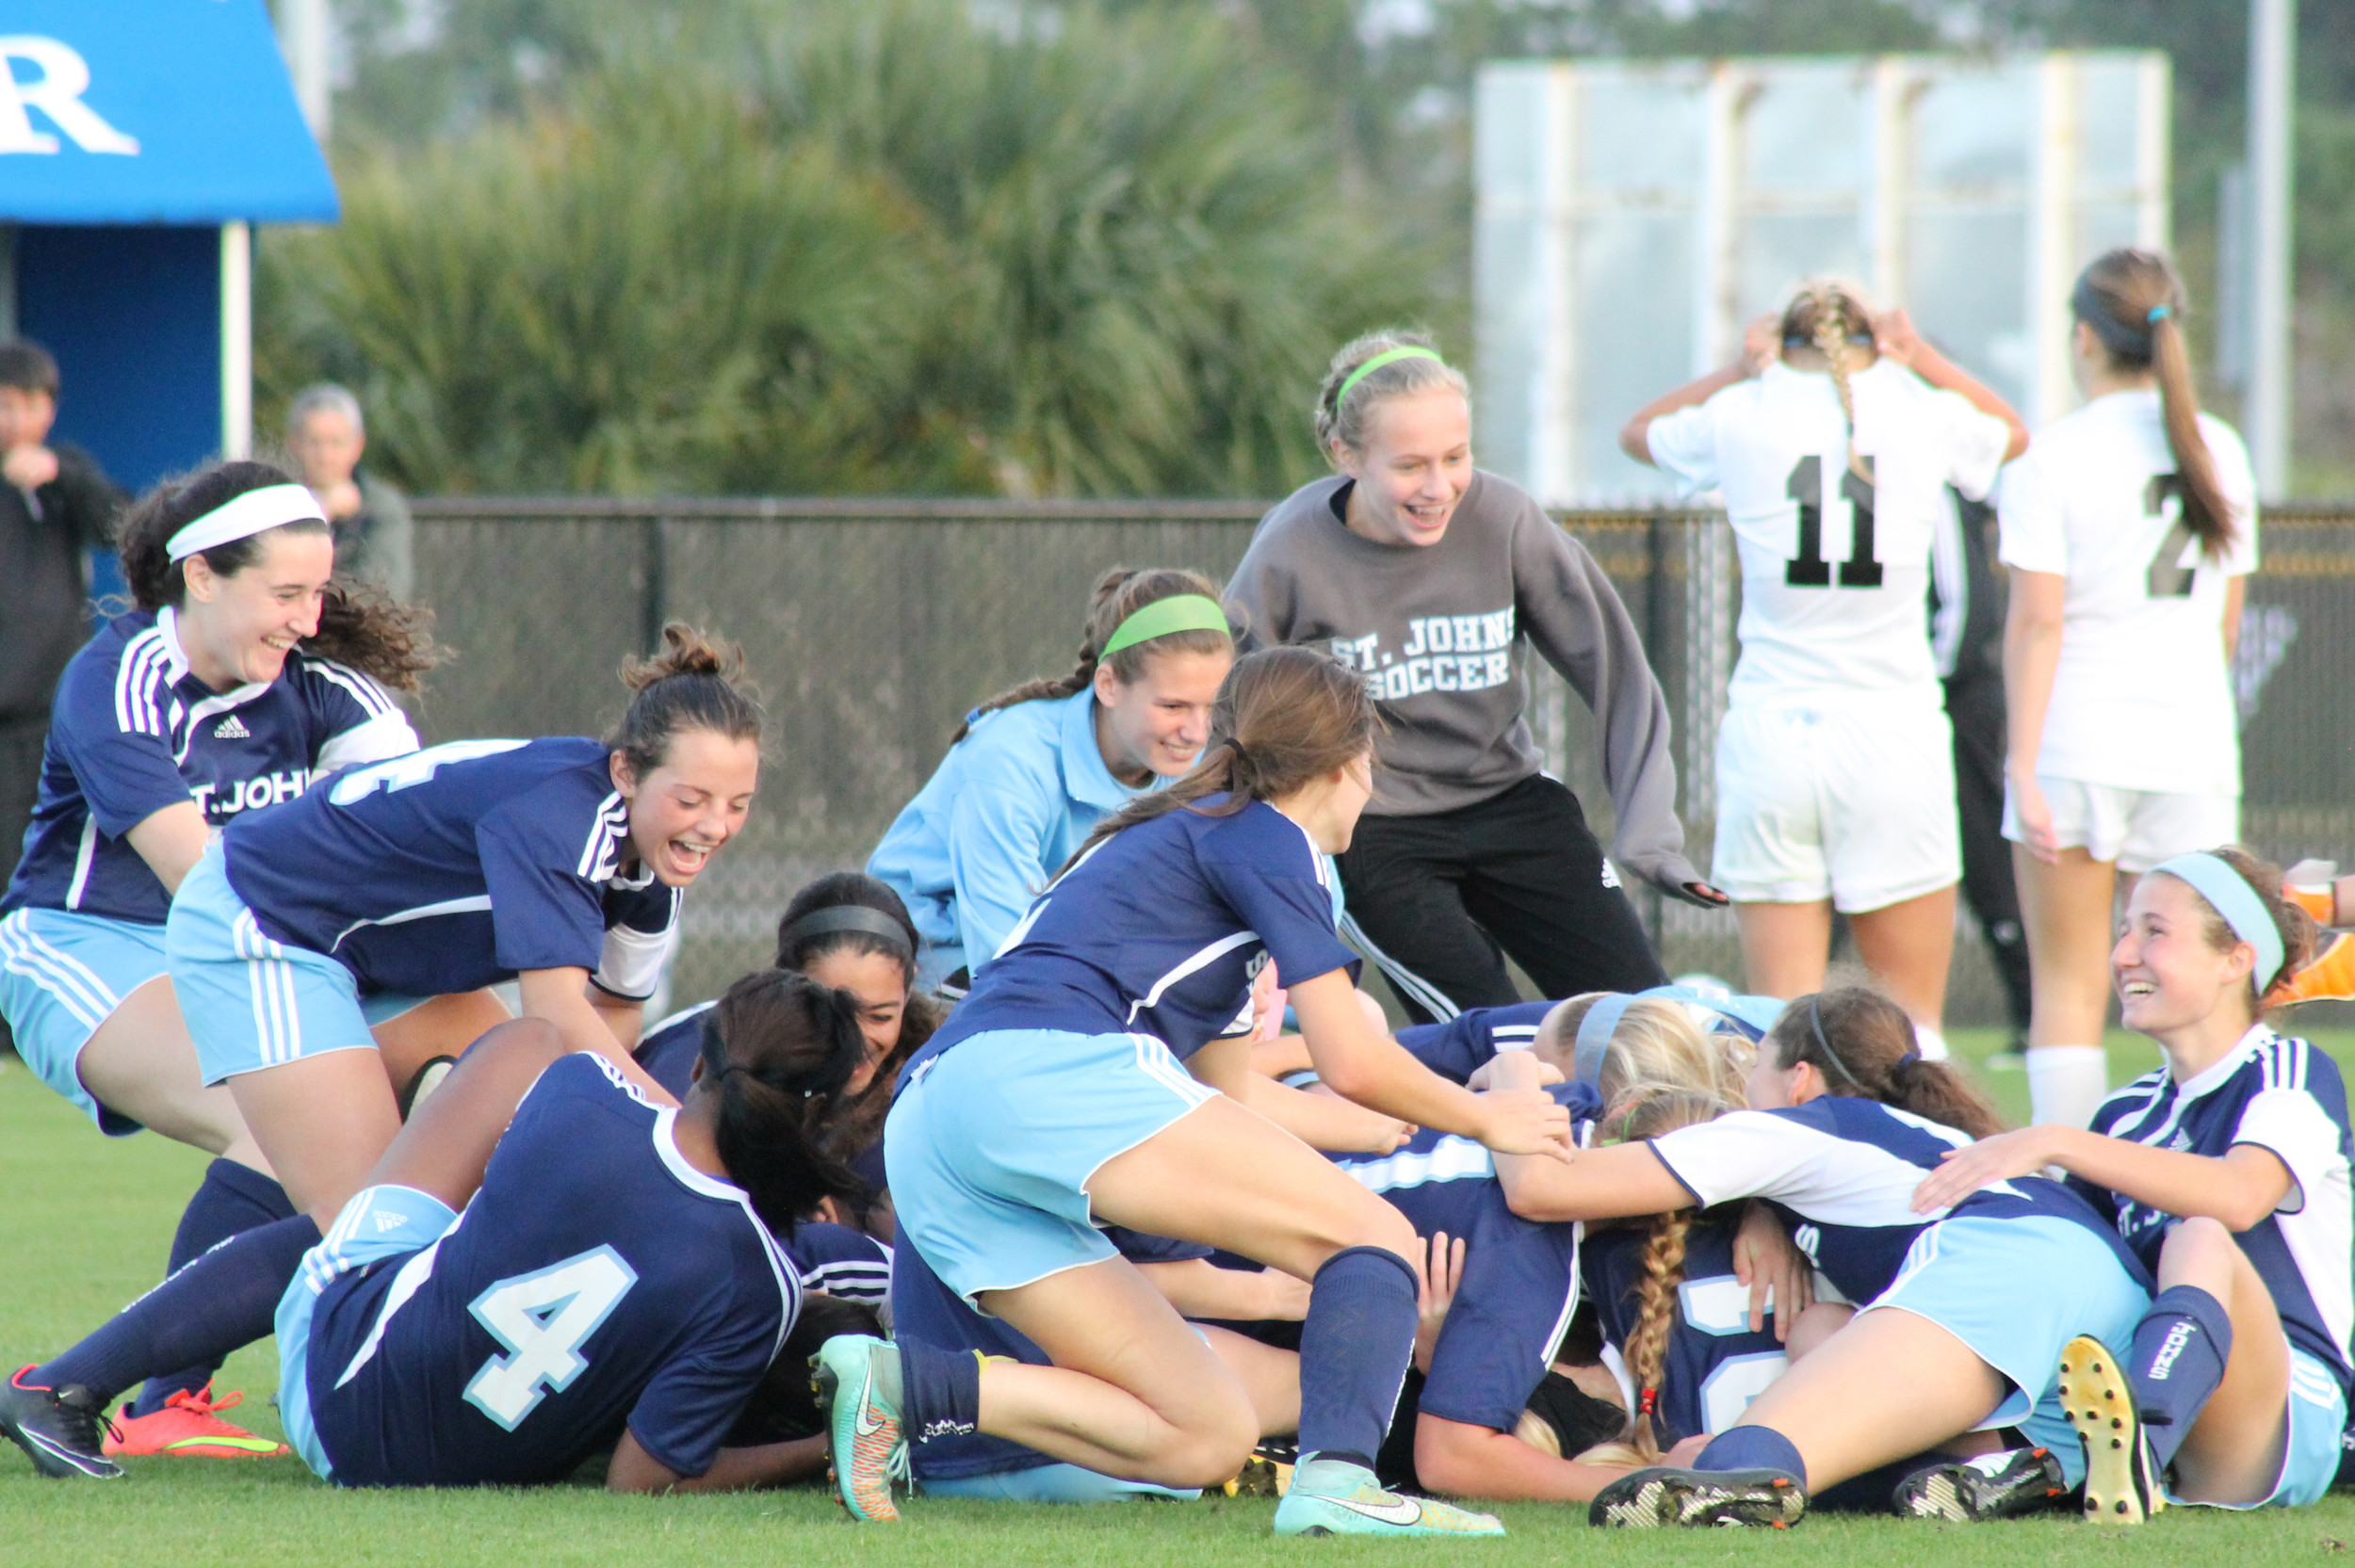 St. Johns Country Day School won an unprecedented fourth straight soccer title in Class 1A. With an unbeaten record thus far and a win over Ponte Vedra in the recent St. Johns Showdown, coach Mike Pickett has the troops to pull off yet another title.